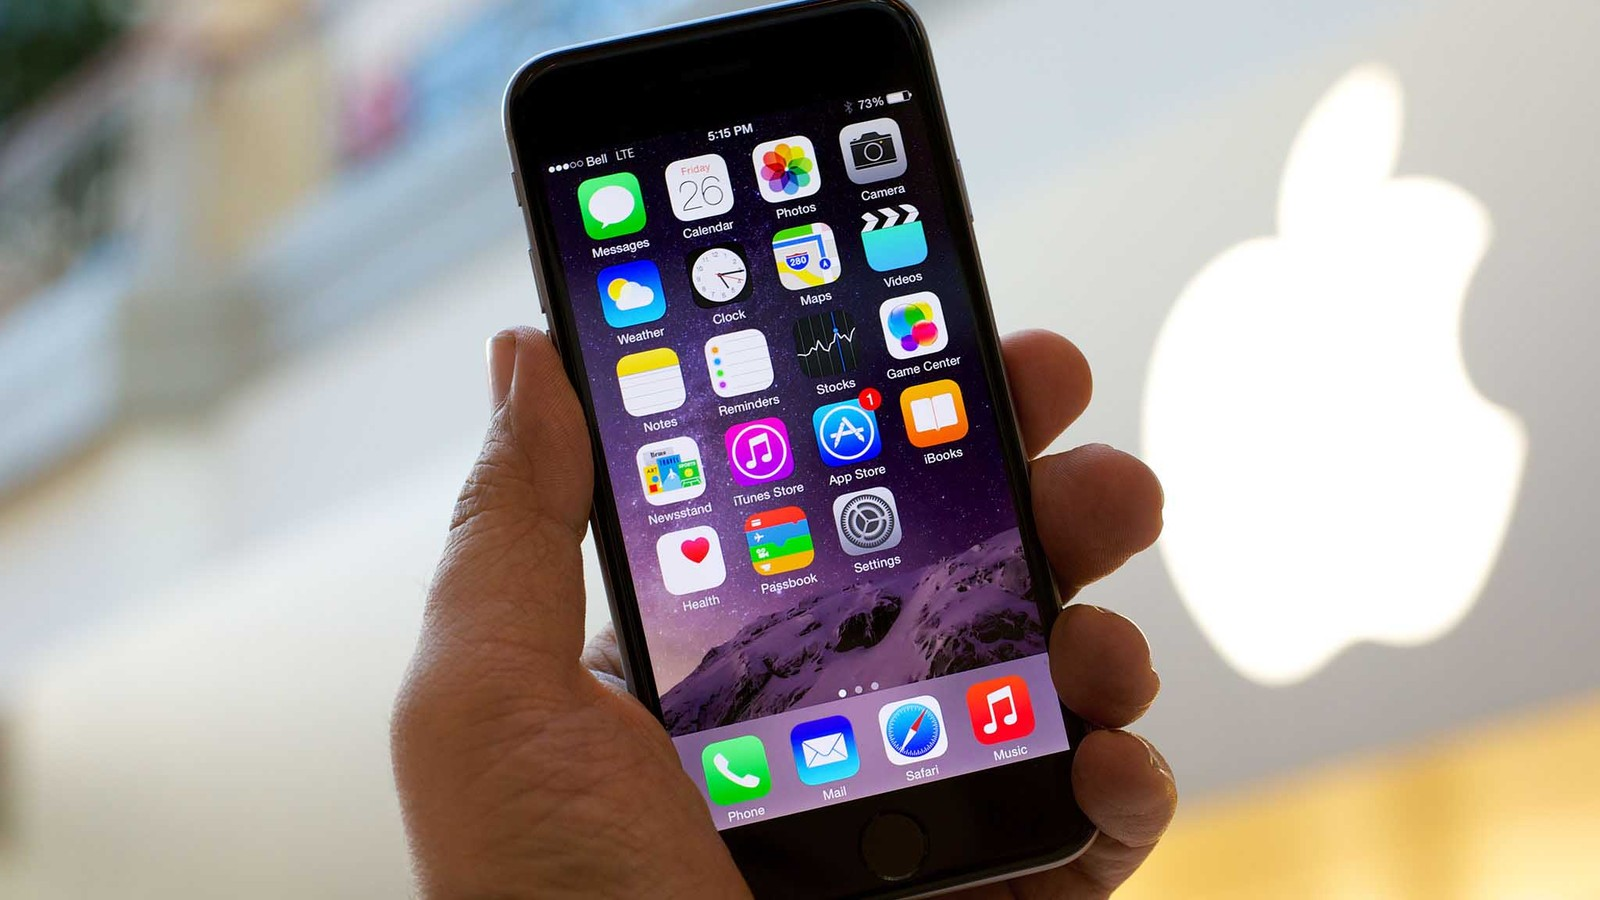 Awesome accessories and apps for your brand new iPhone 6 or iPhone 6 Plus